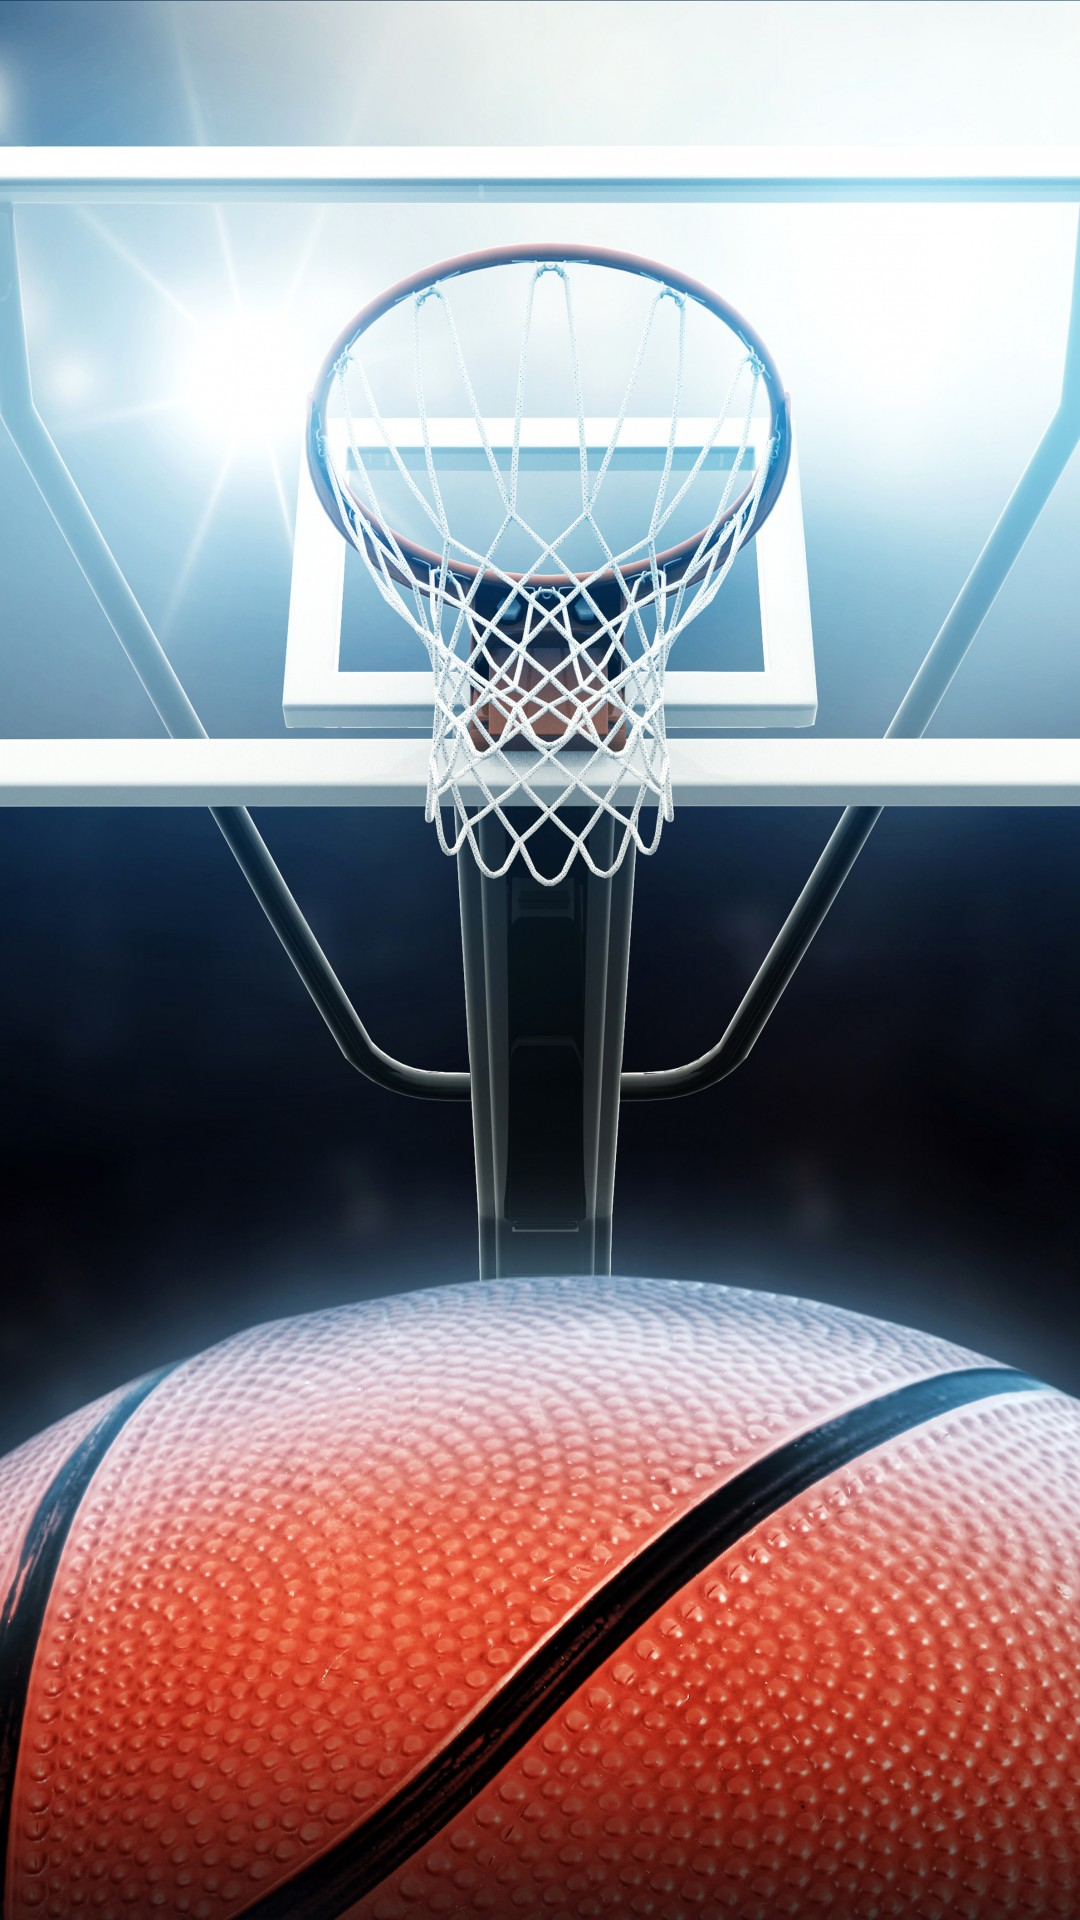 #11215 basketball, NBA, Wallpaper Sport